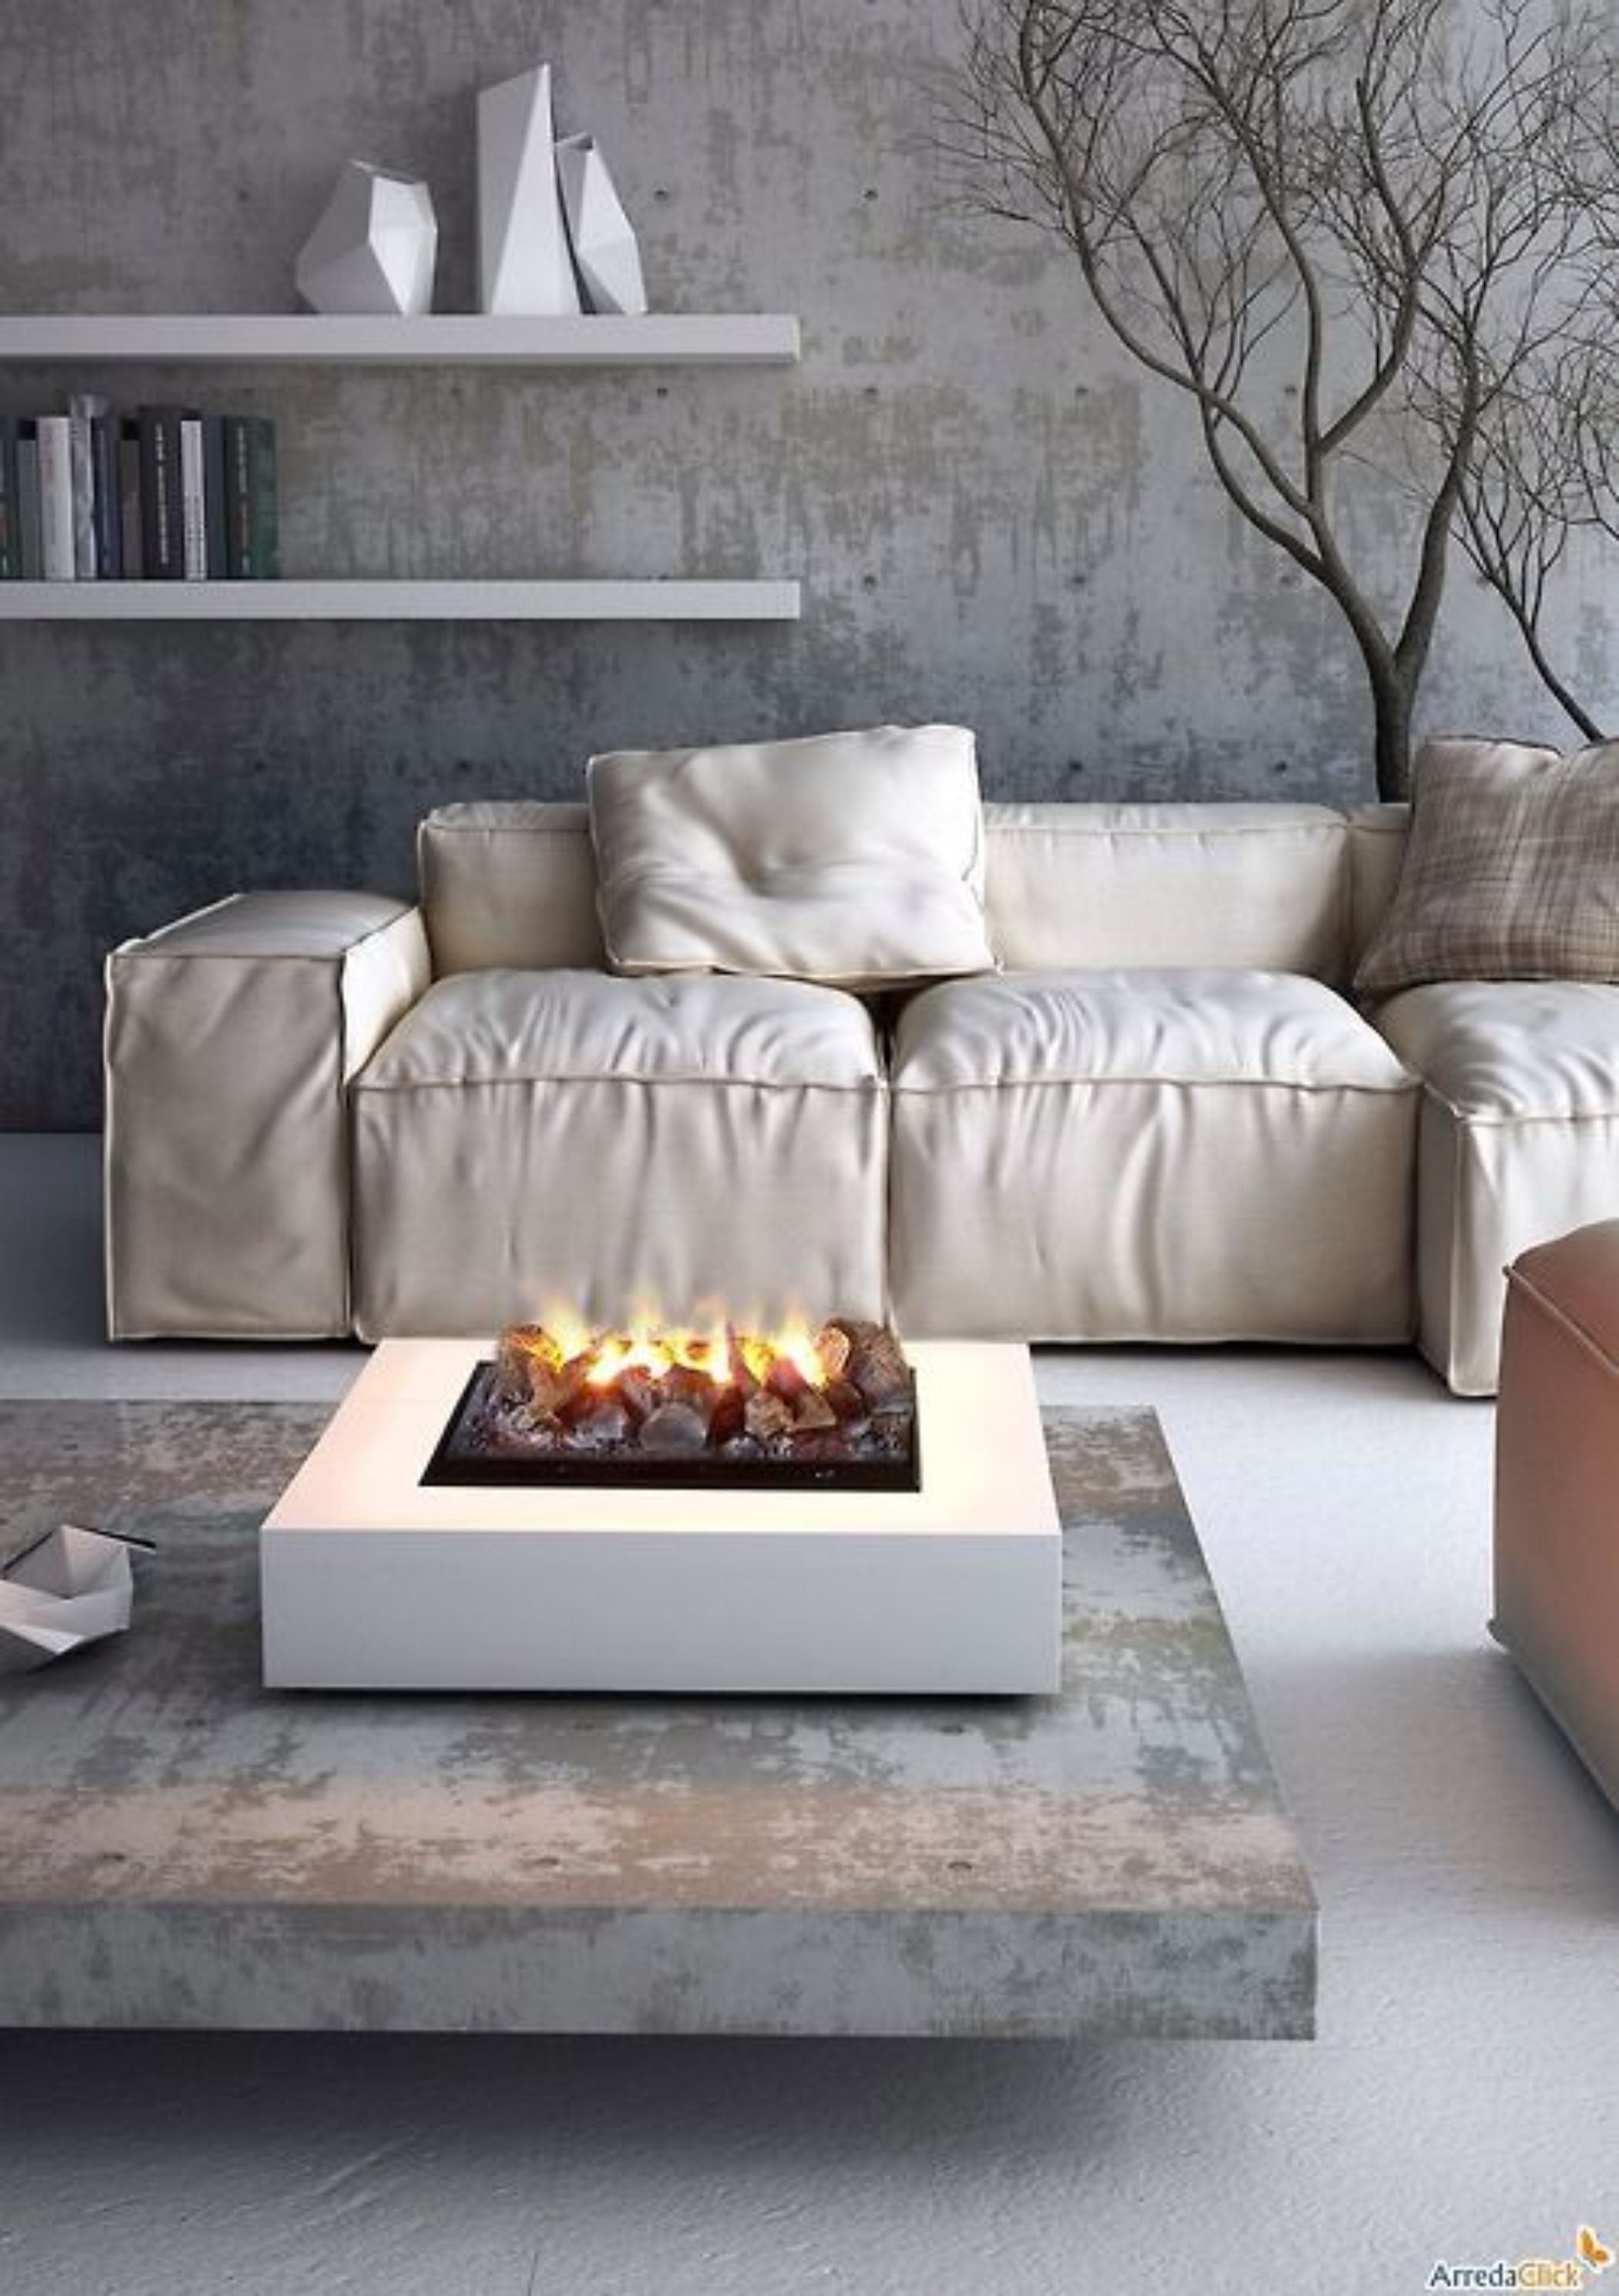 Fire Pit Kits Minimalist Grey Living Room Theme With Fire Pits For ...